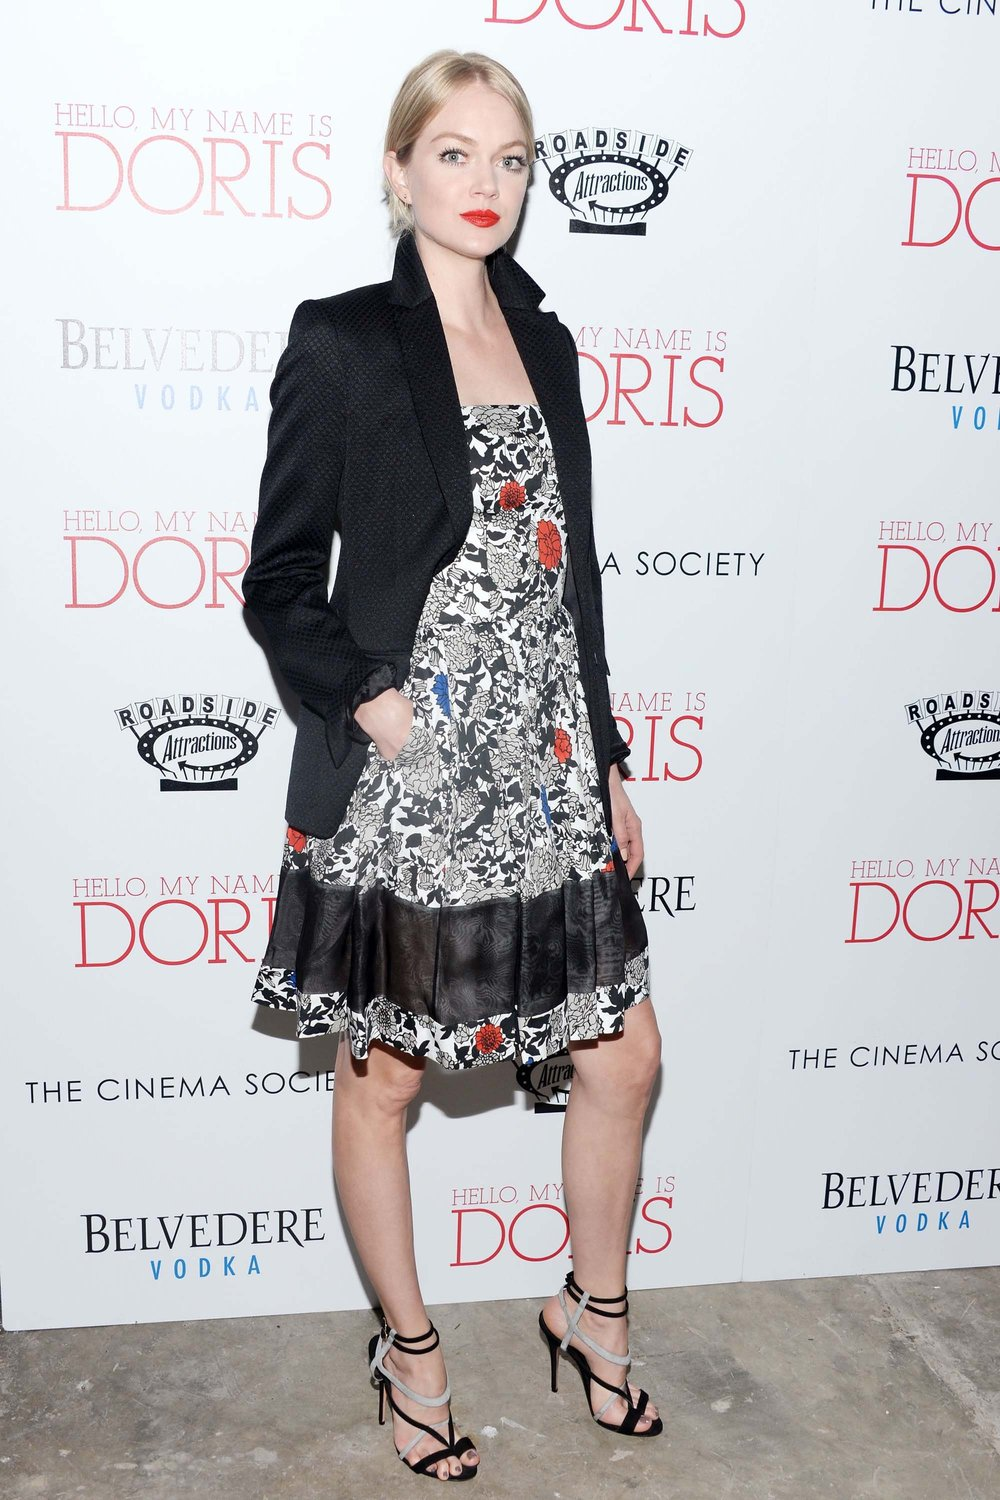 lindsay-ellingson wearing sophie theallet-Hello, My Name is Doris Premiere.jpg